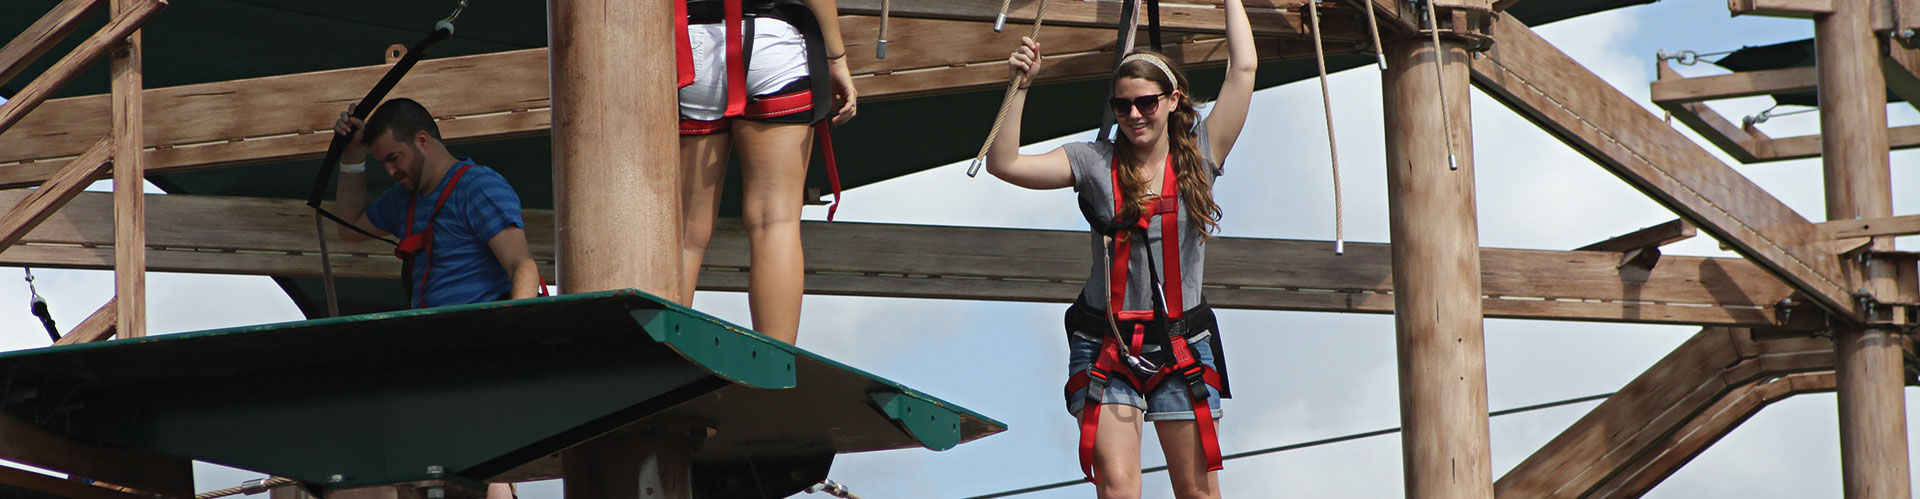 Woman on Ropes Course